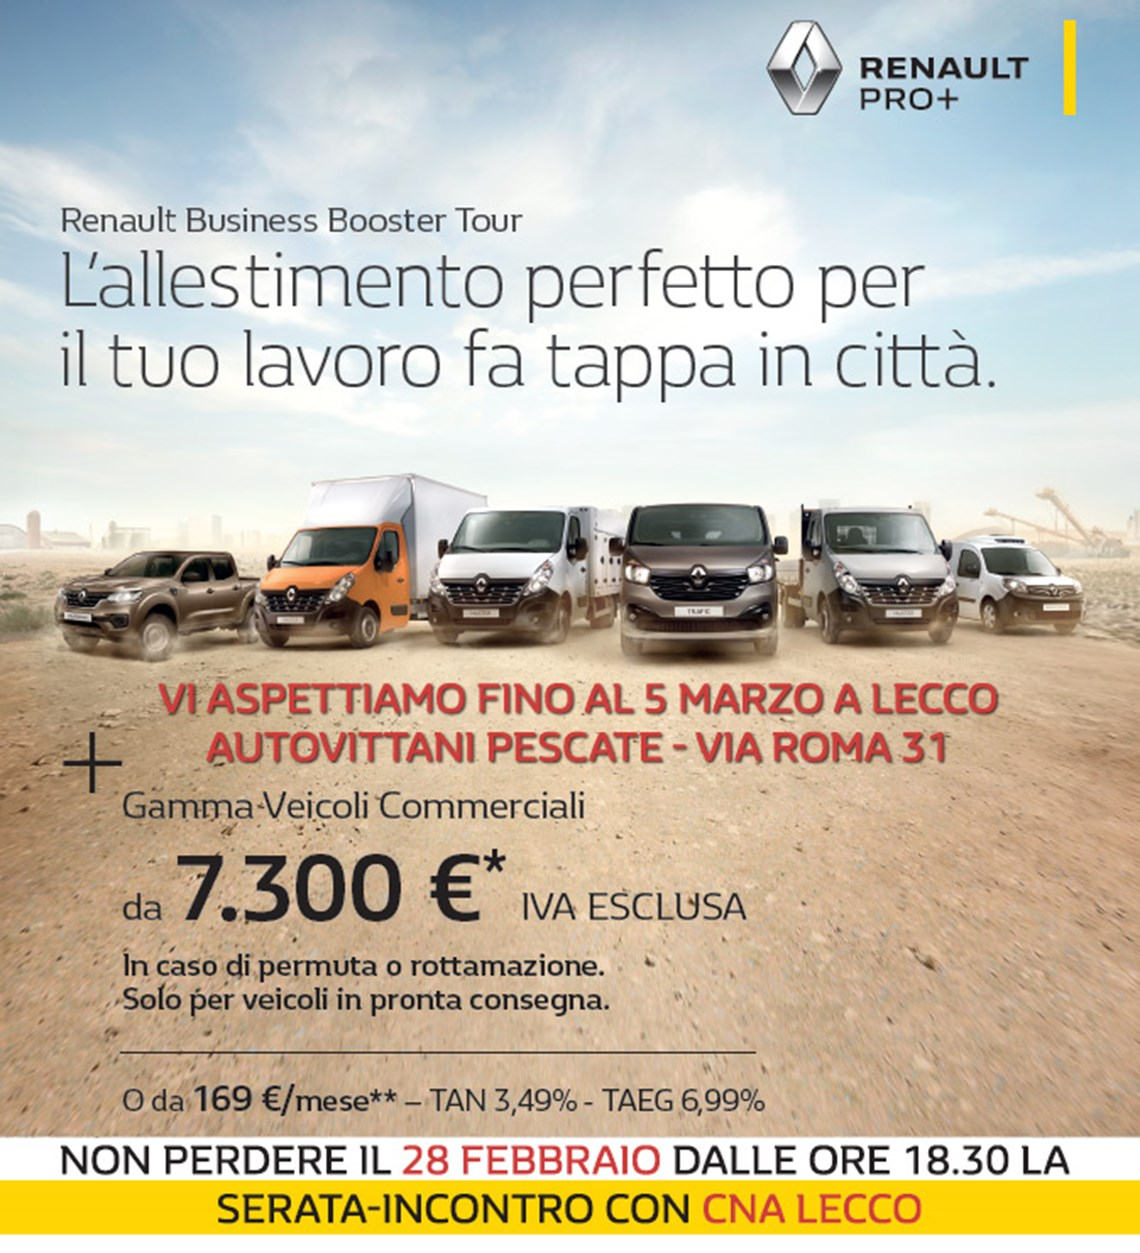 Veicoli Commerciali Renault - Business Booster Tour